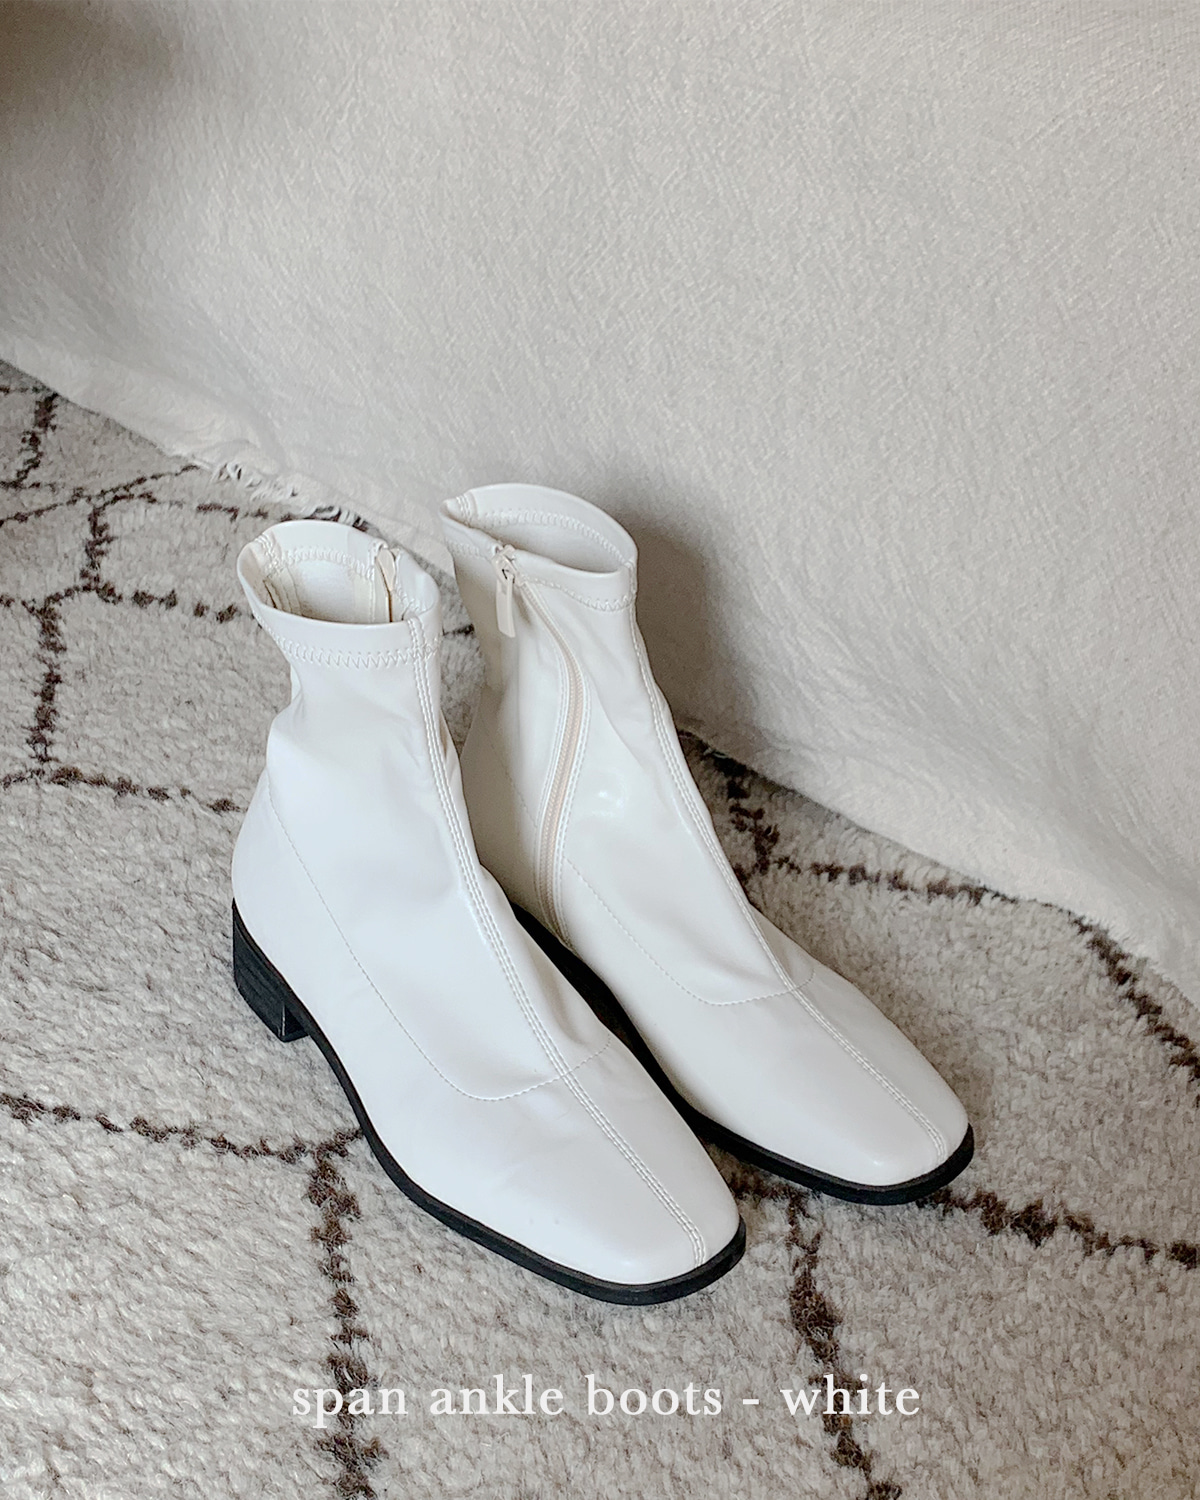 SPAN ankle boots - WHITE